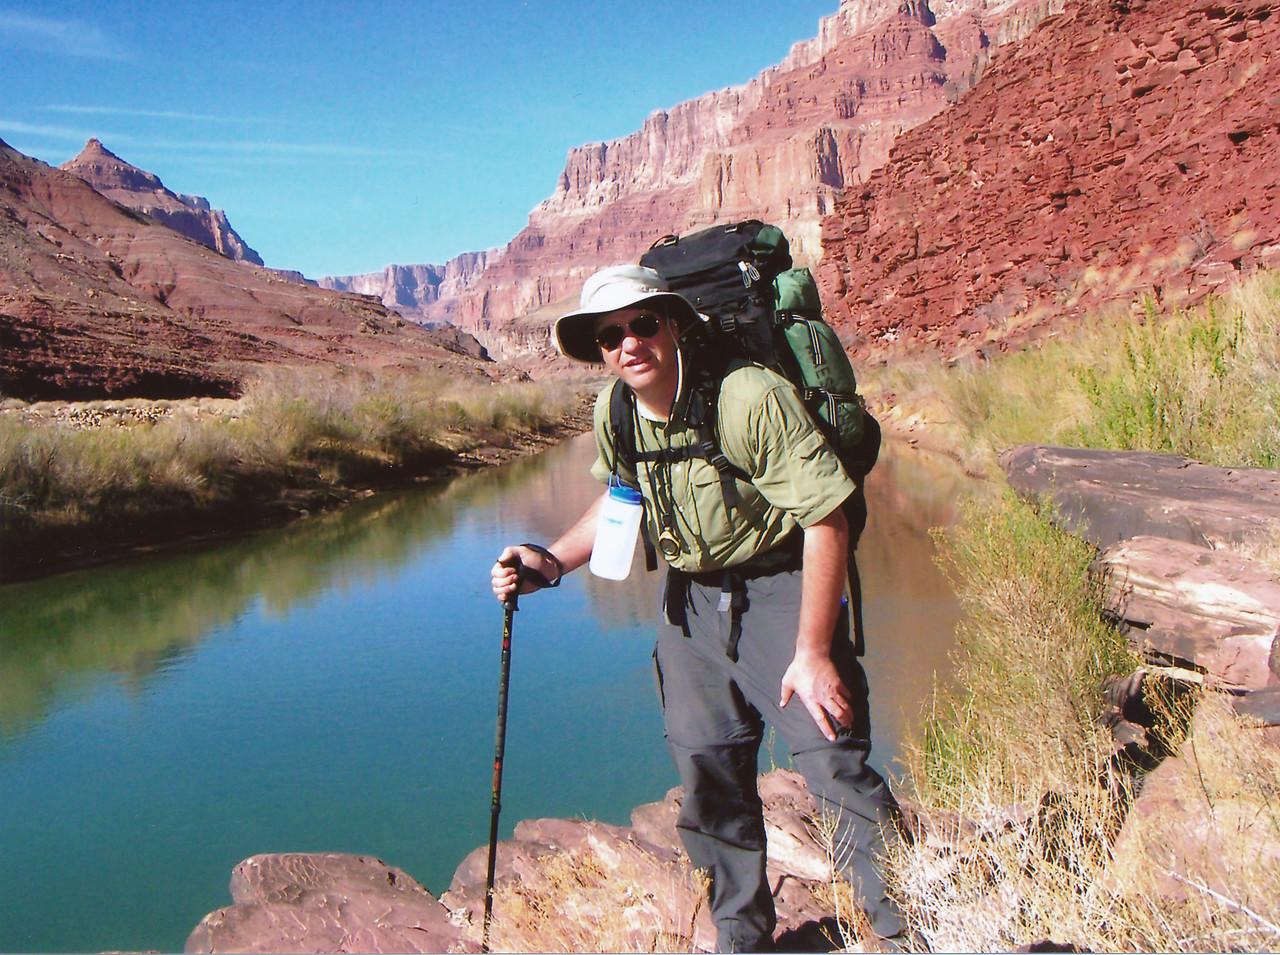 March 2006. Day 2 on the lower Beamer Trail near a small river tributary. From the way im standing you can tell the pack is still heavy at about 80 pounds. <br /> <br /> At this point I have about 6 miles to hike before I reach the confluence of the Colorado and Little Colorado Rivers.